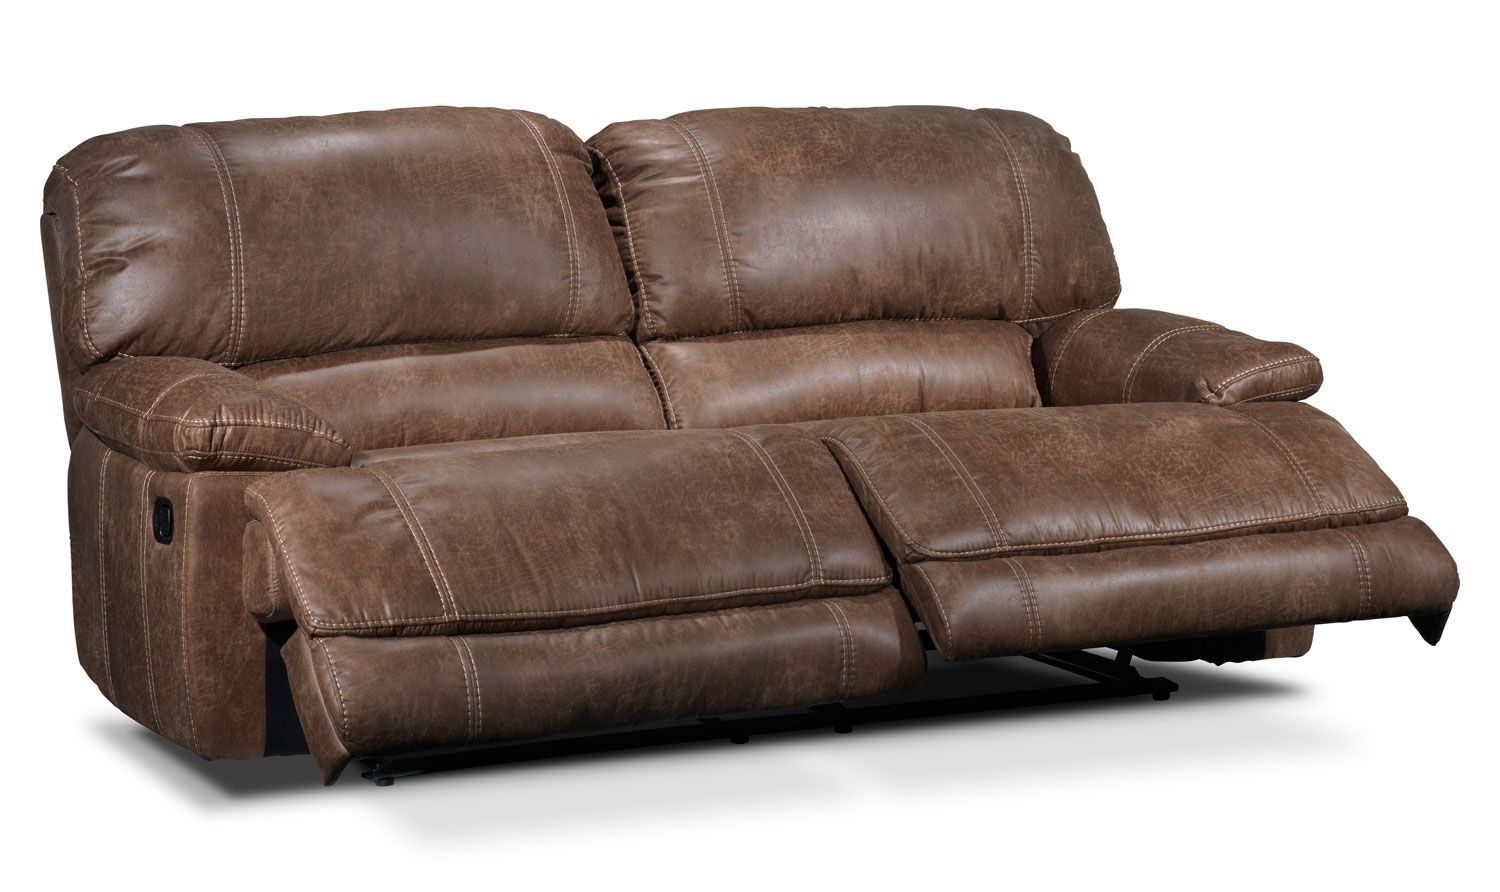 Durable Sofa Bed How To Clean At Home In India Saddle Up The Rugged Look Of Durango Reclining